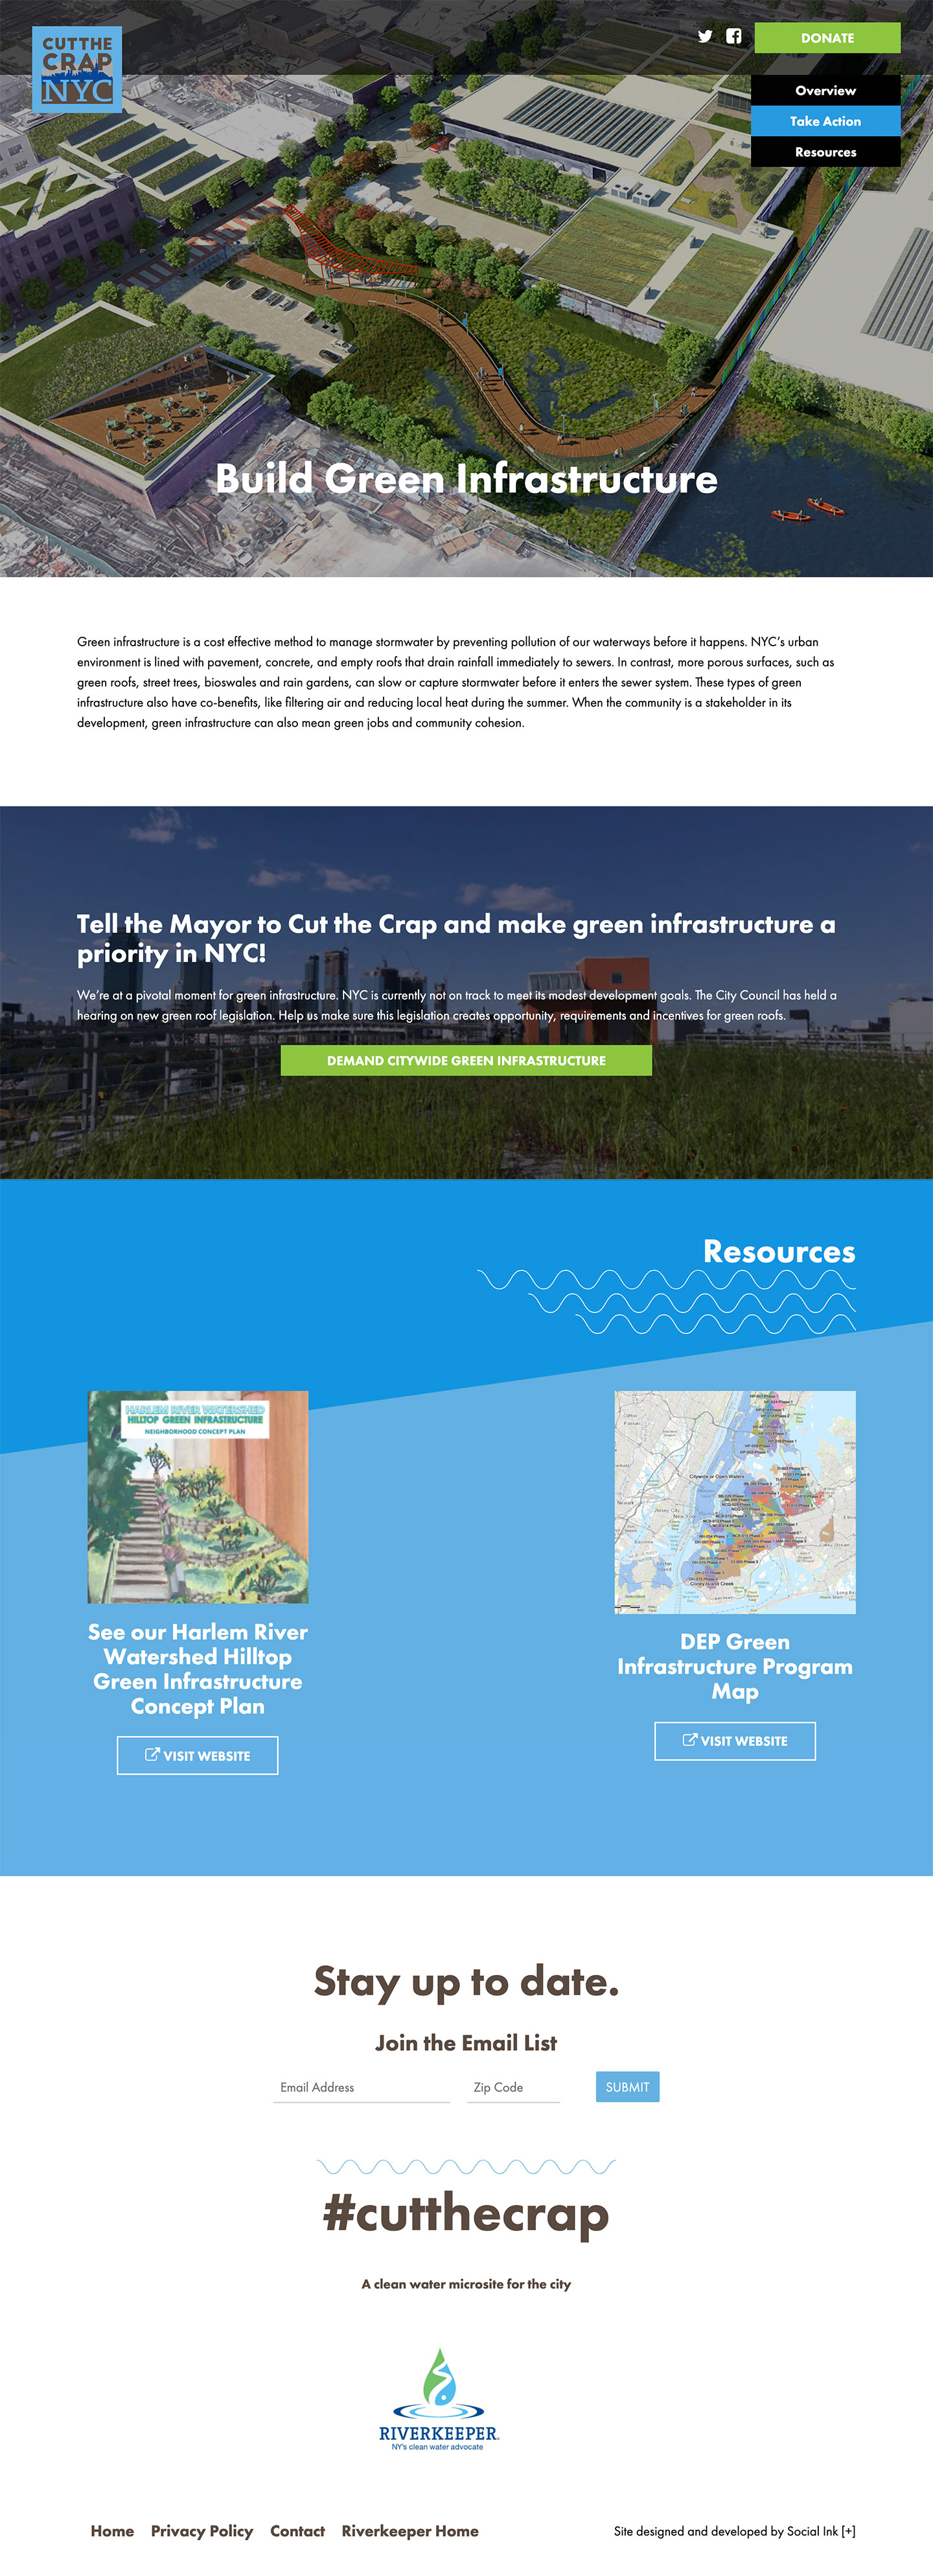 Cut the Crap NYC: Cut the Crap: Green Infrastructure Campaign